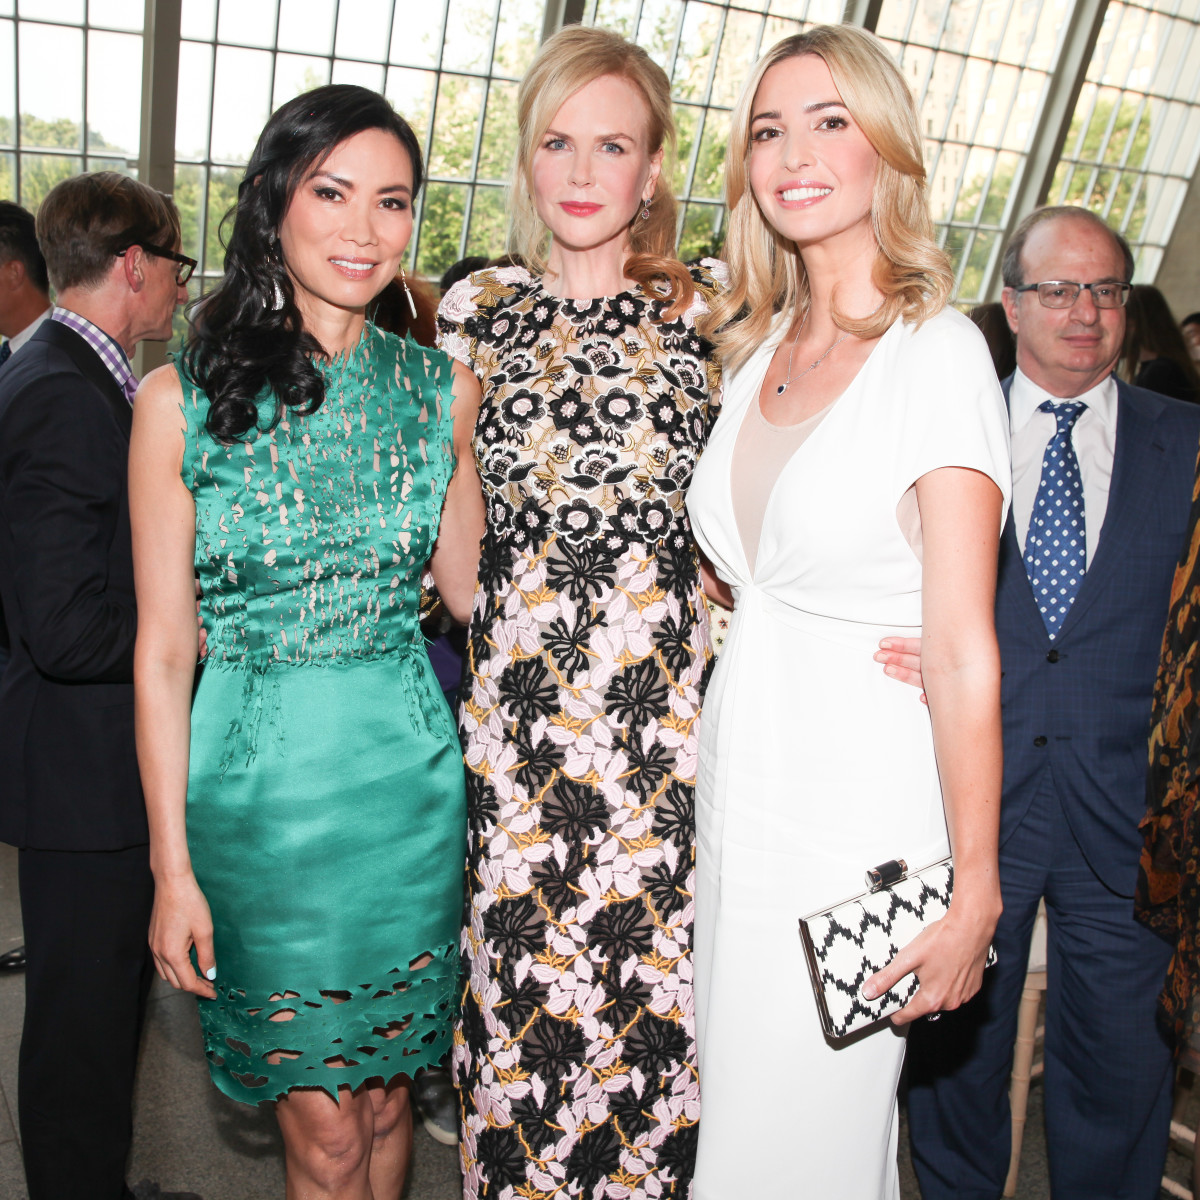 Wendi Murdoch, Kidman and Ivanka Trump. Photo: Vogue